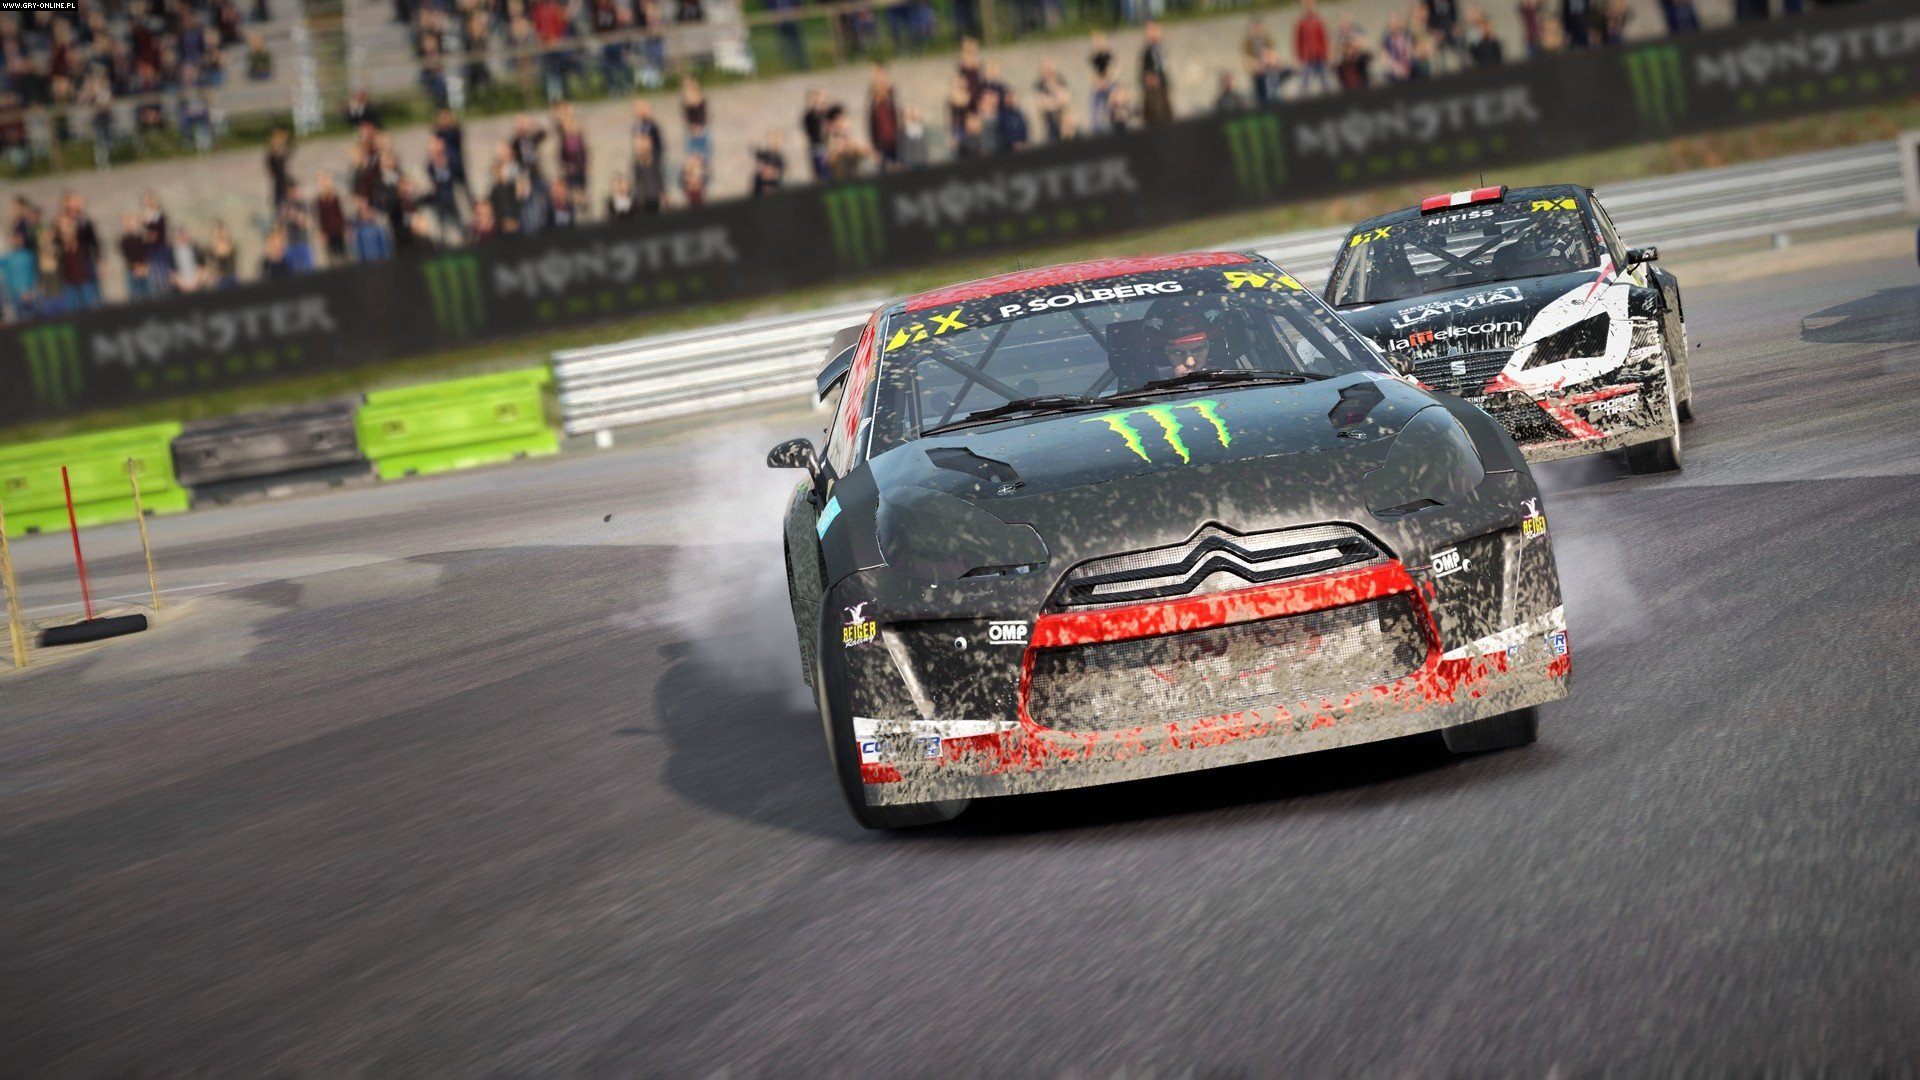 DiRT 4 PC, PS4, XONE Games Image 3/66, Codemasters Software